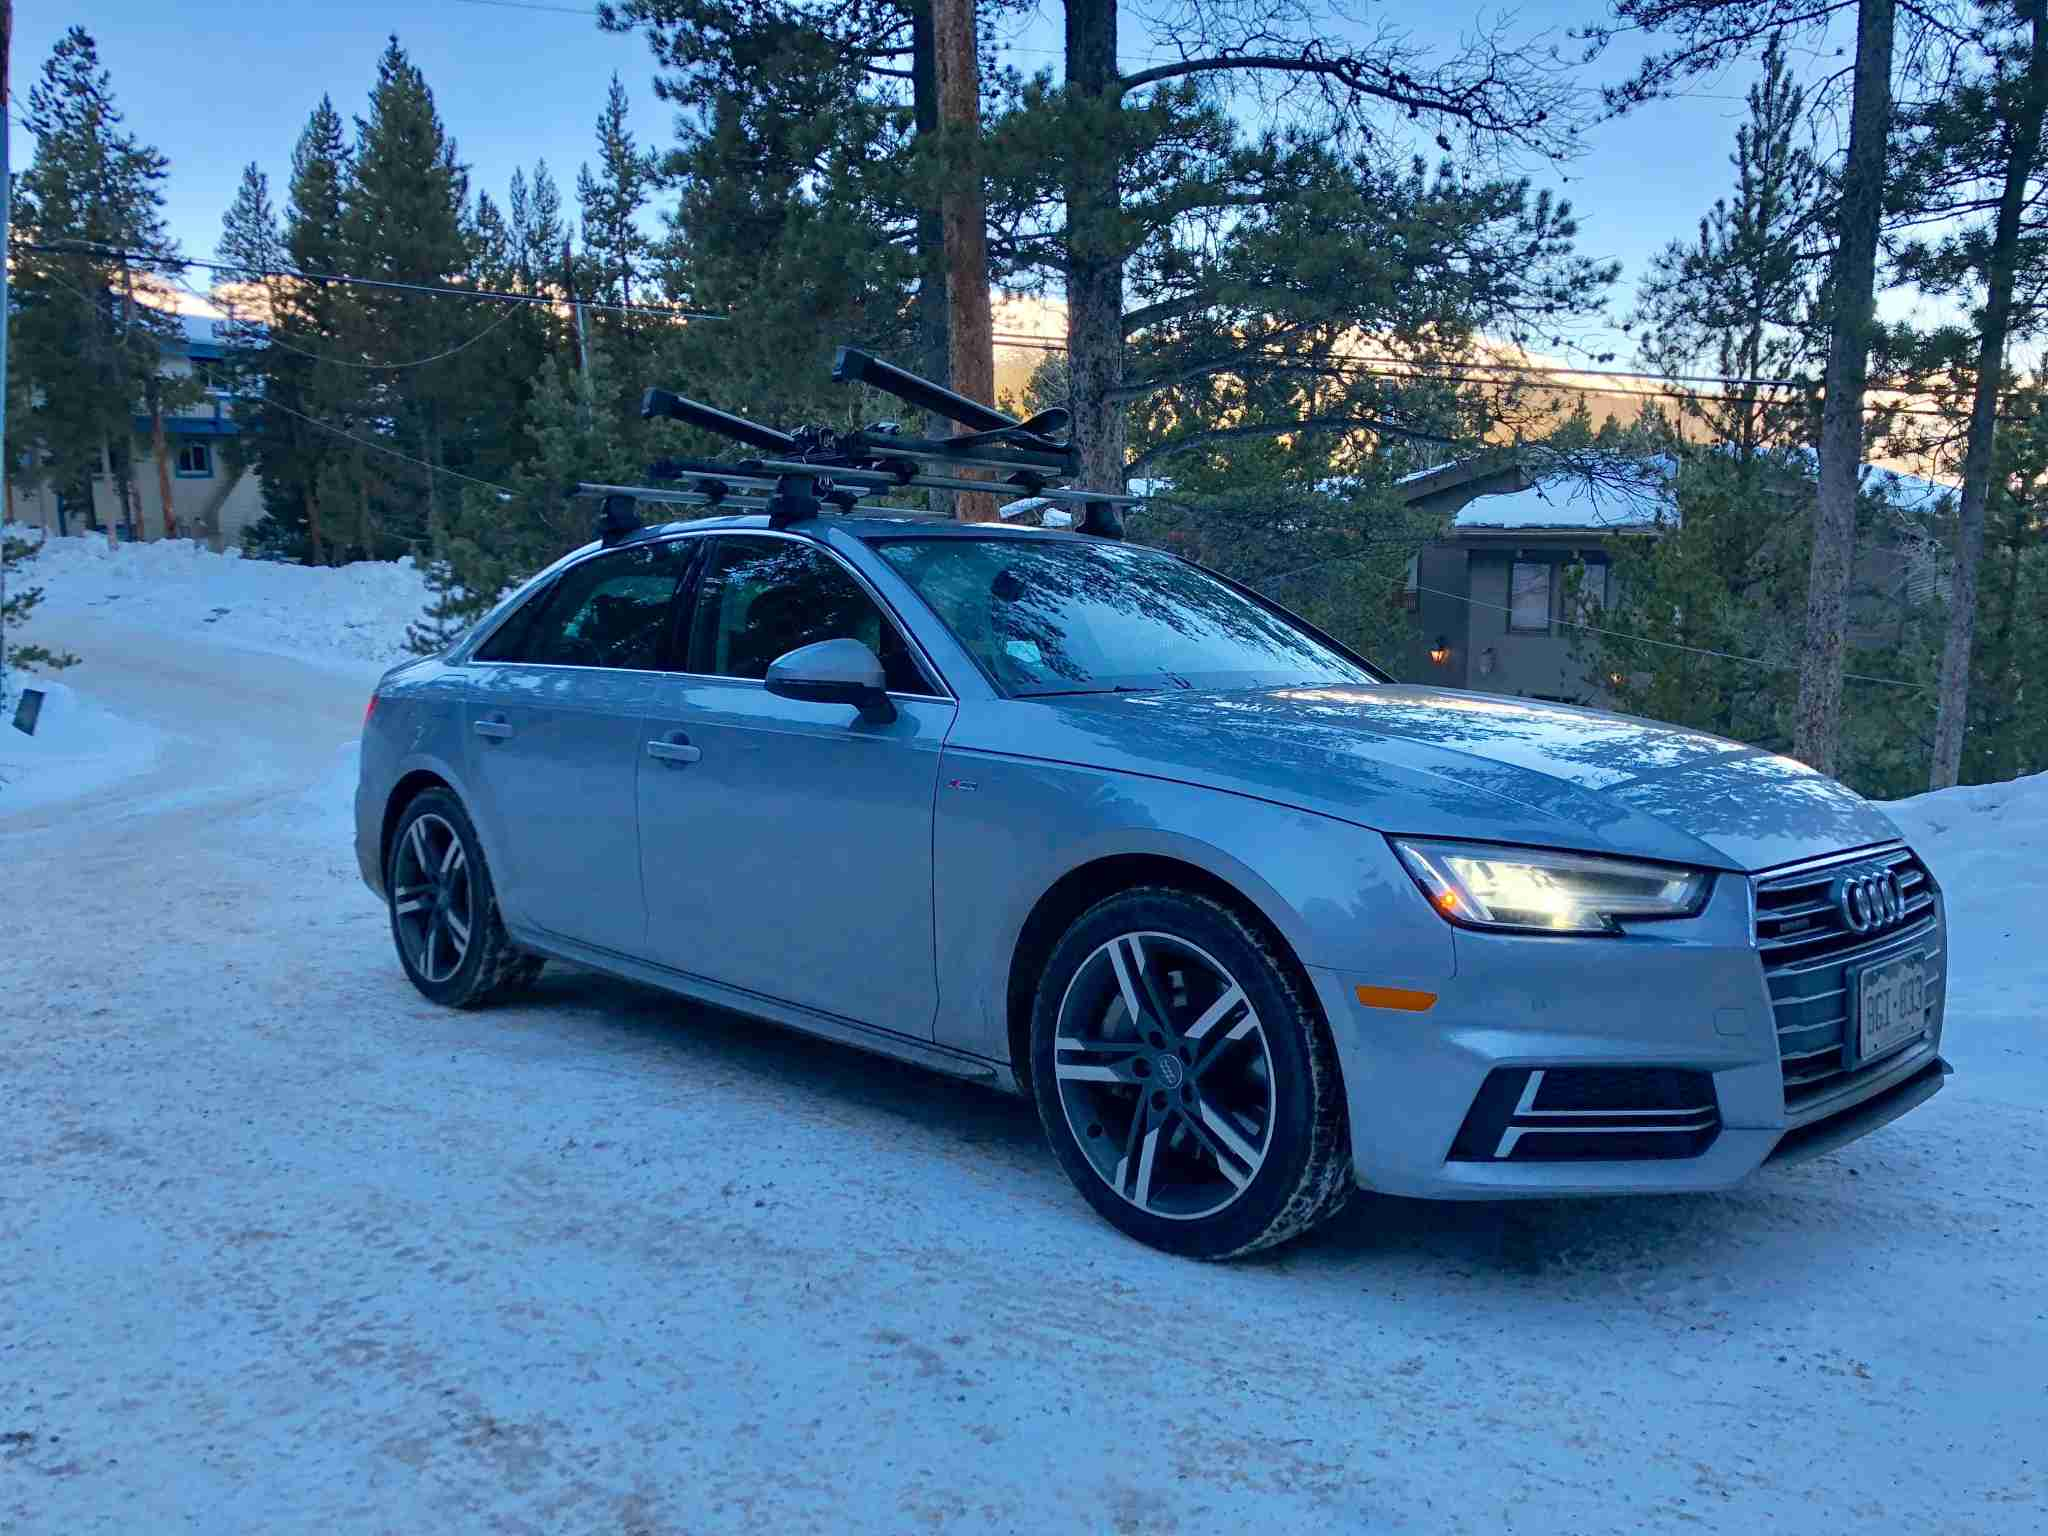 Silvercar in Colorado. (Photo by Summer Hull/The Points Guy)